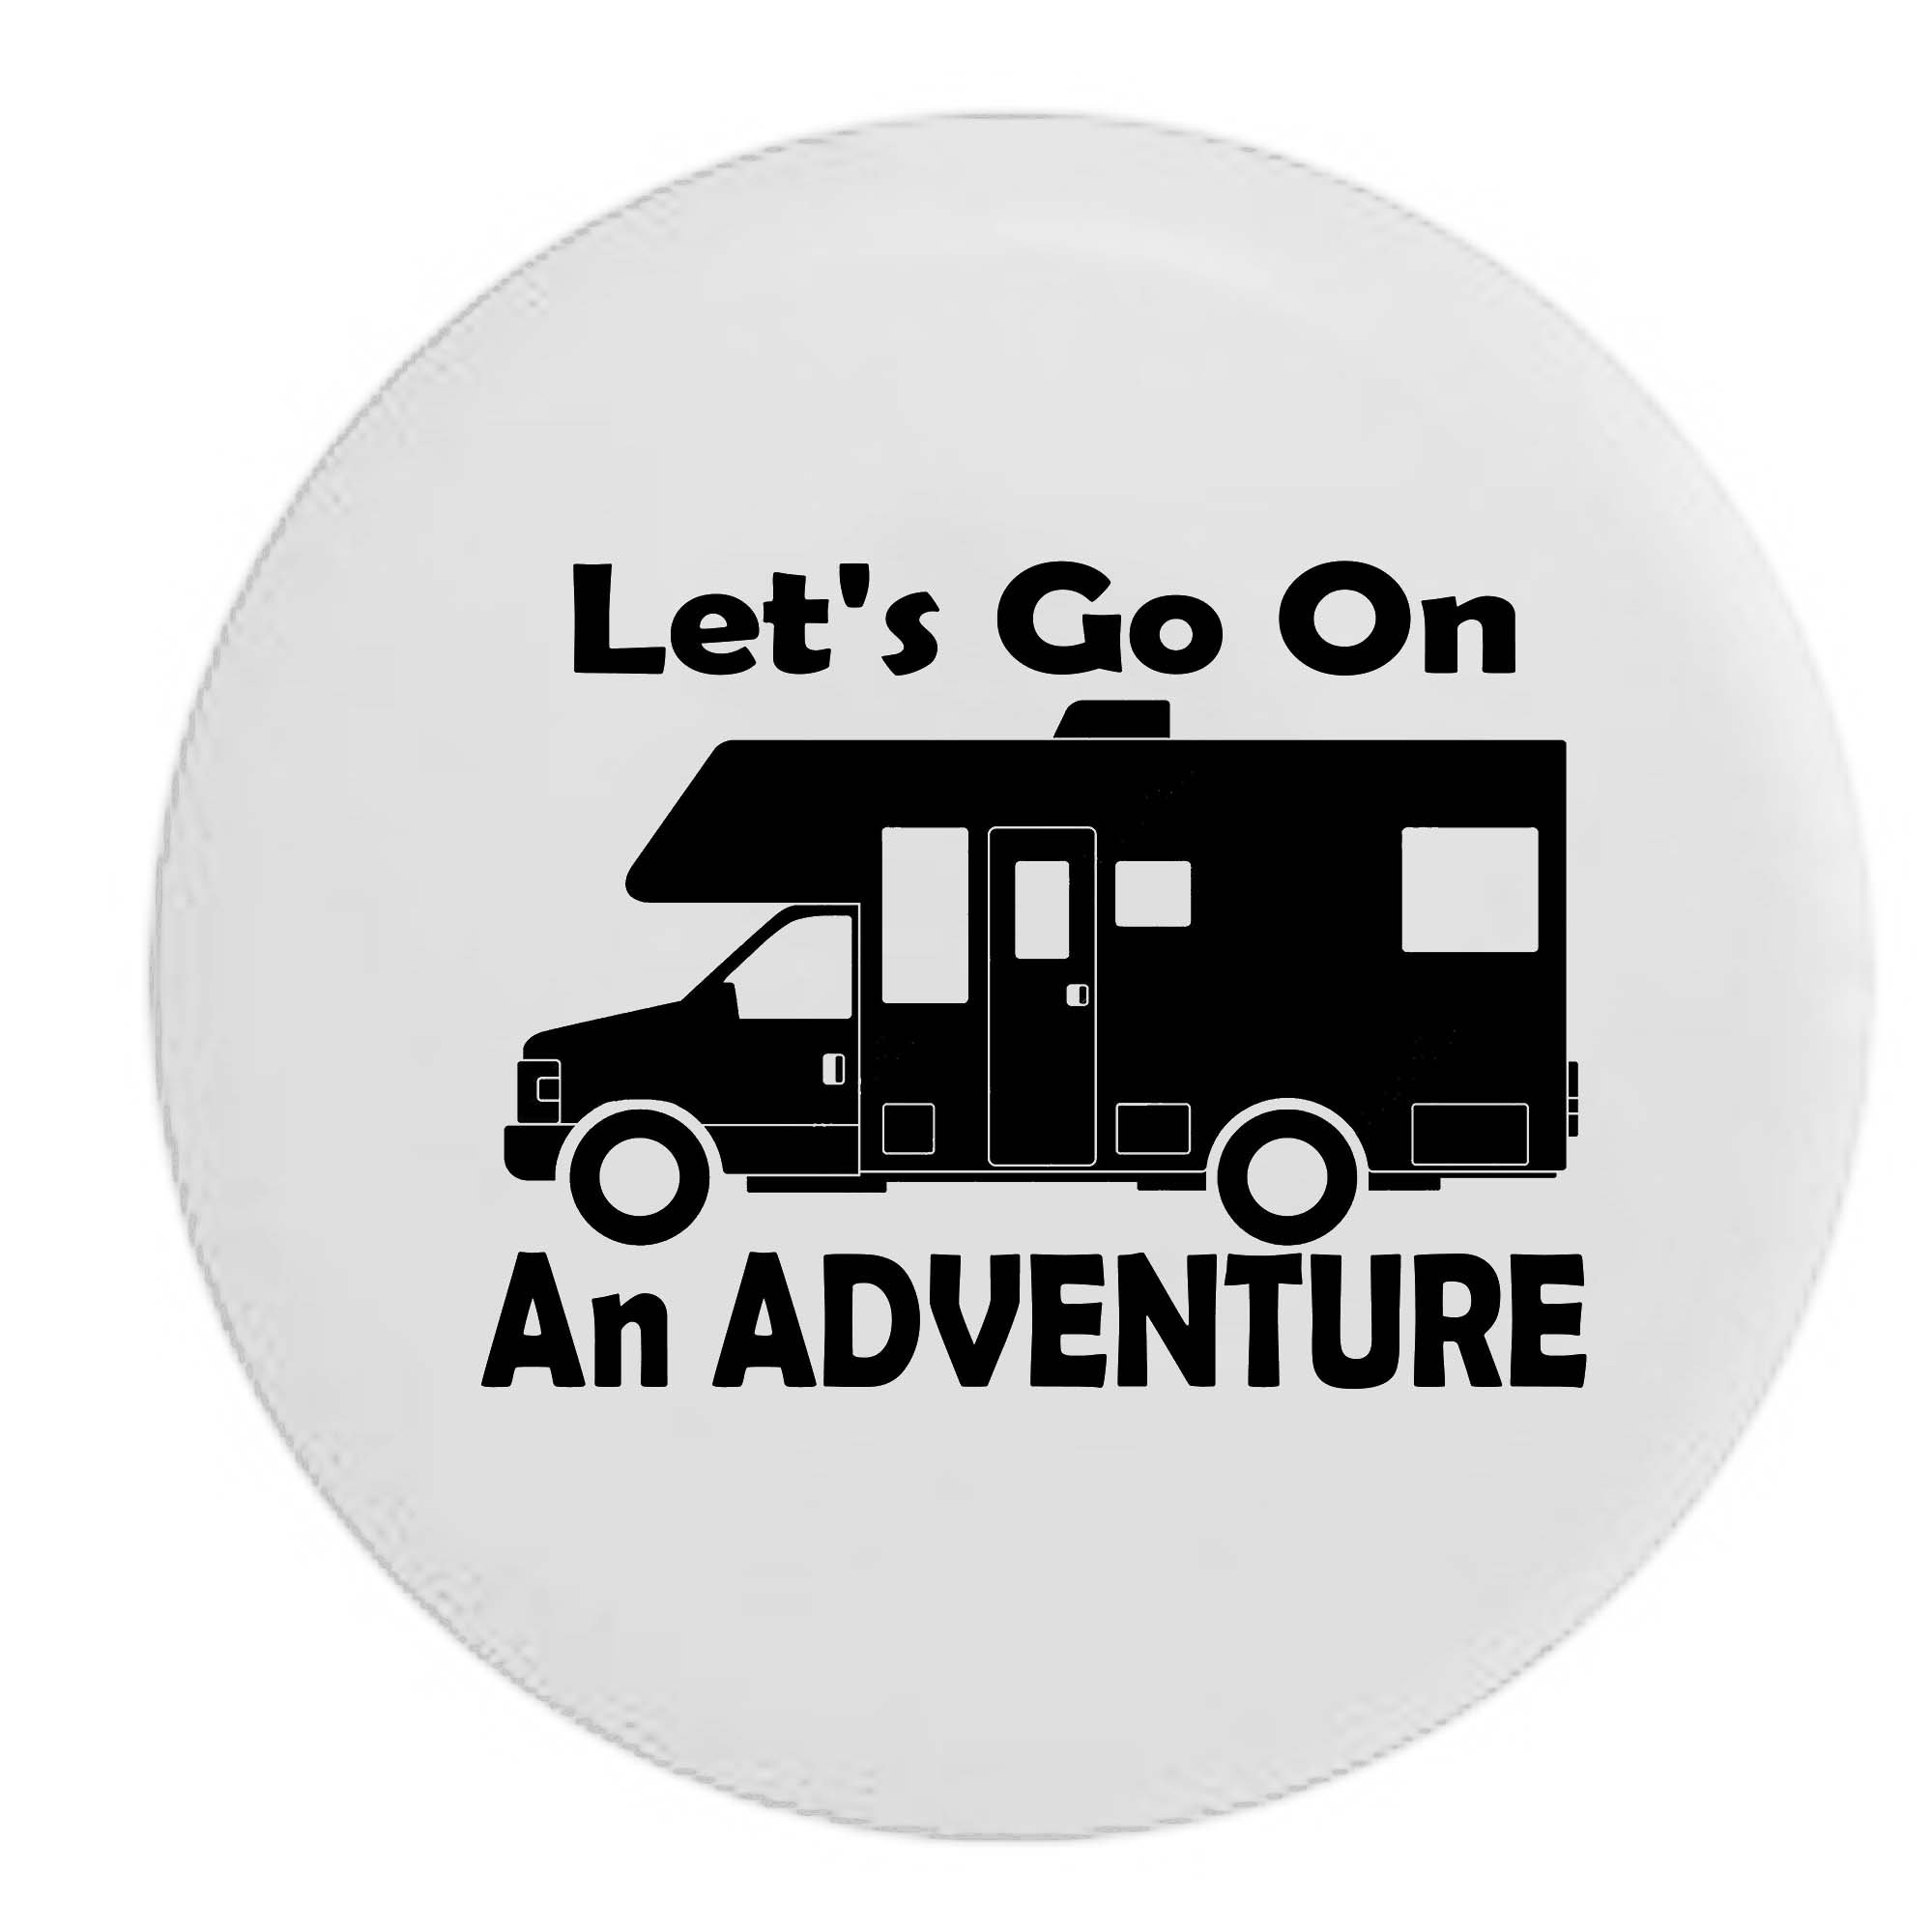 Pike Outdoors White - Let's Go on an Adventure RV Motorhome Camping Travel Spare Tire Cover OEM Vinyl Black 29 in by Pike Outdoors